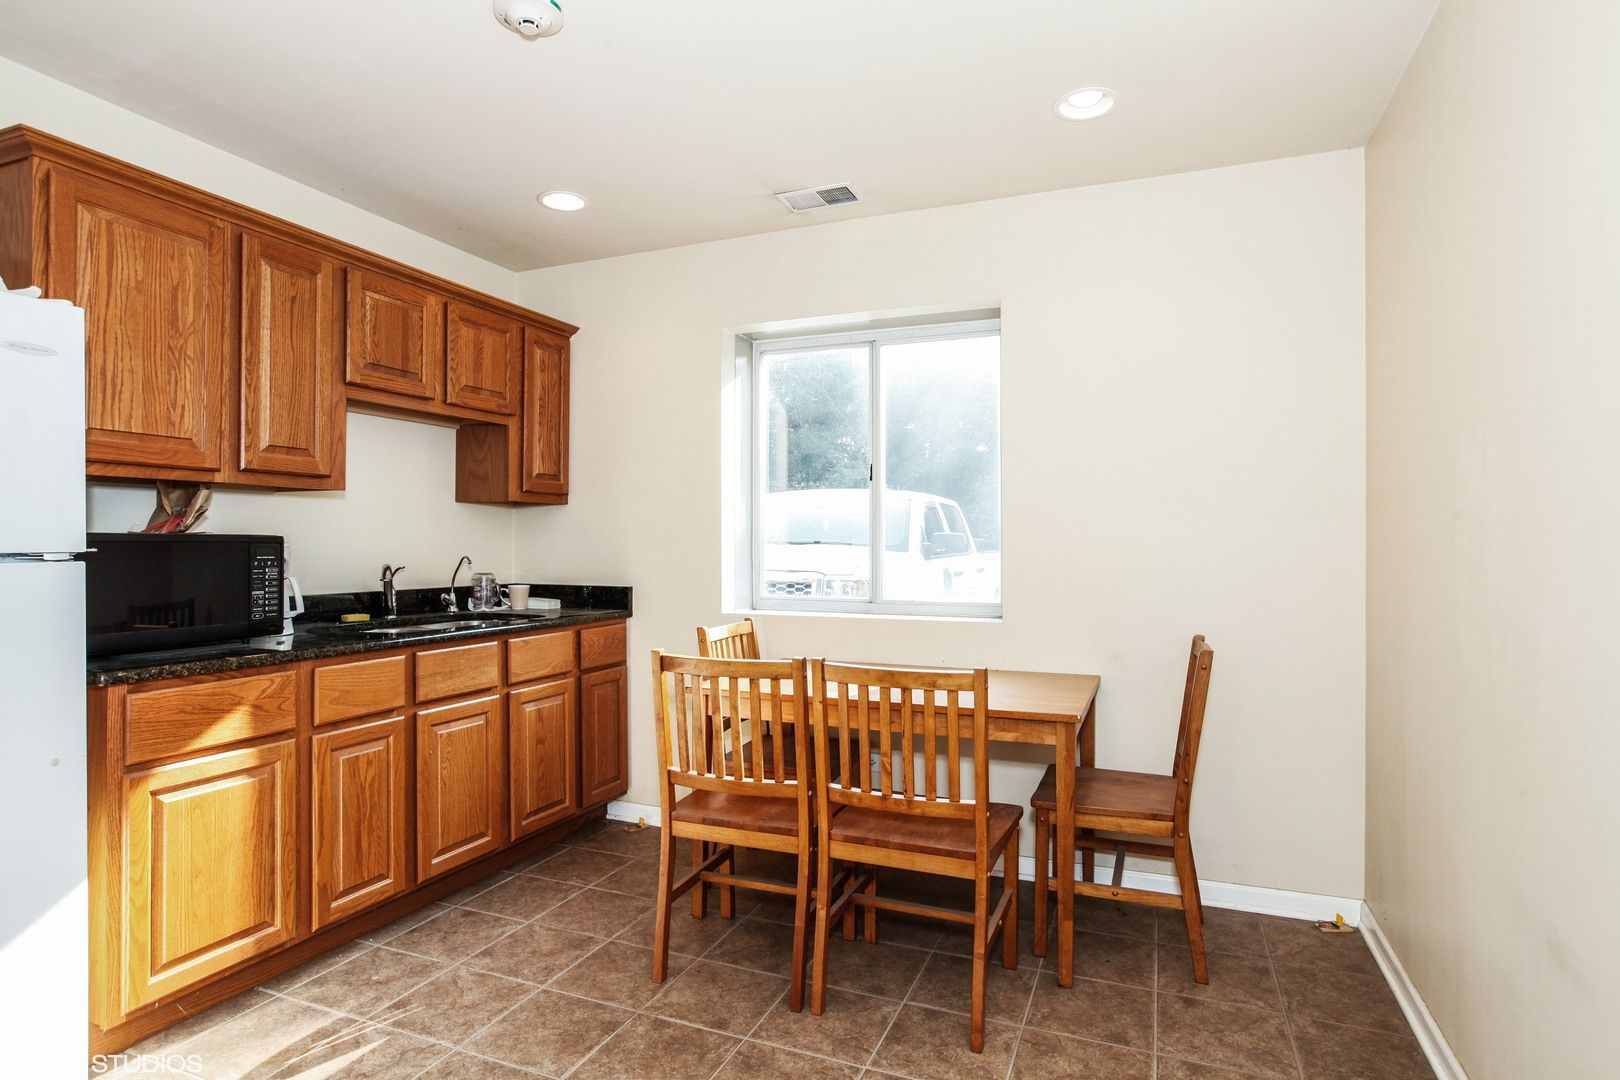 13148 West Route 6 (Maple Rd.)